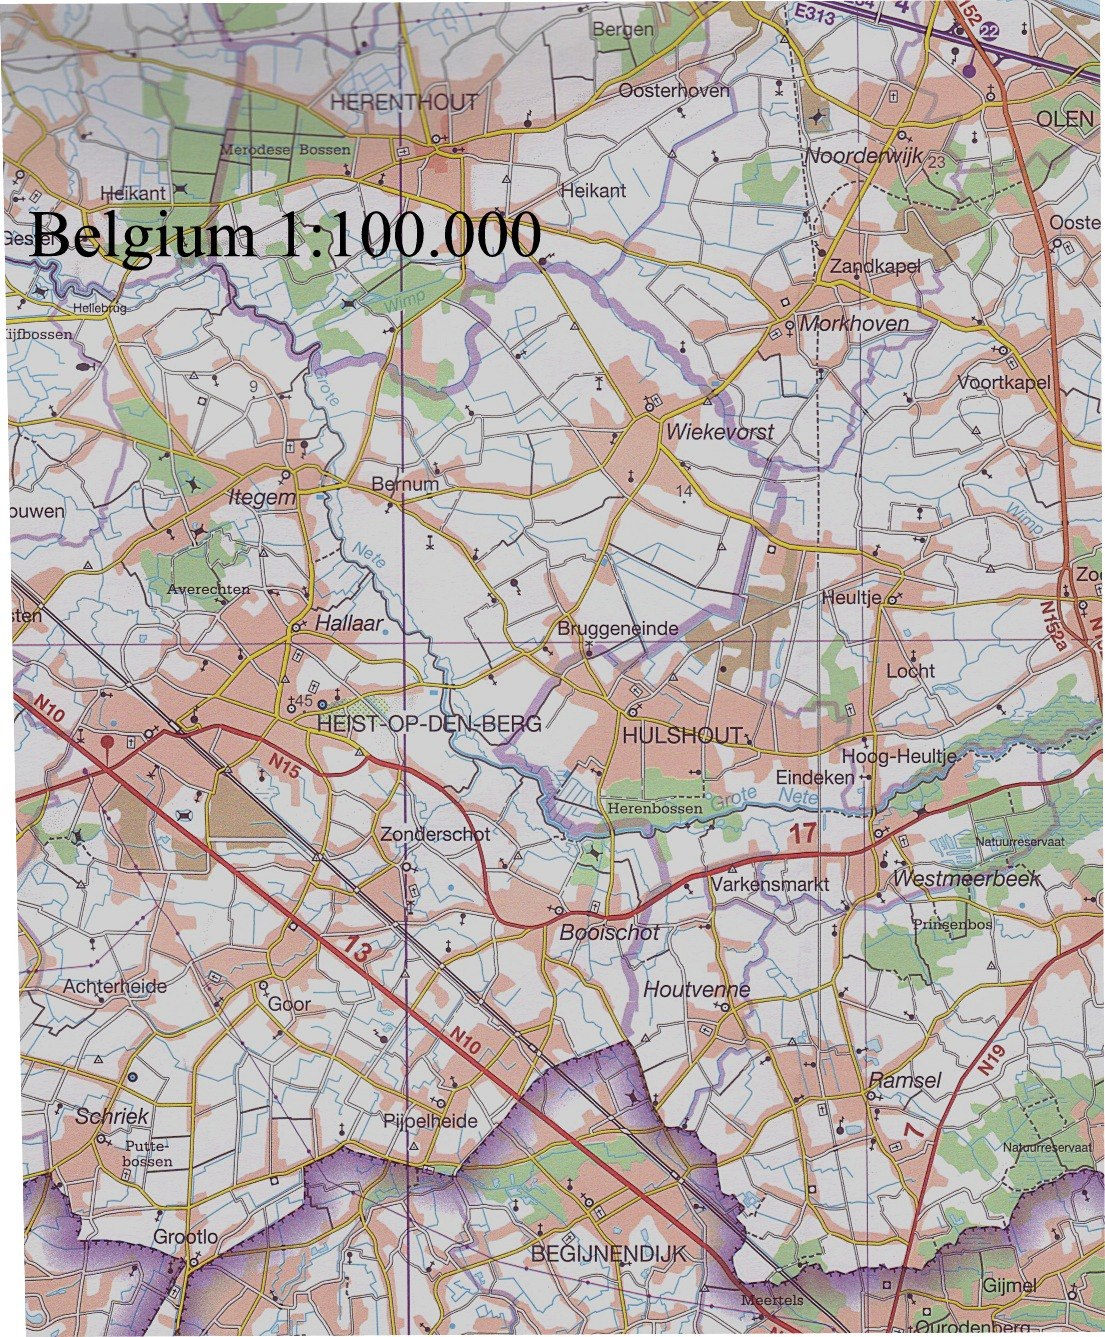 Belgium Buy Maps and travel guides online – Map Belguim